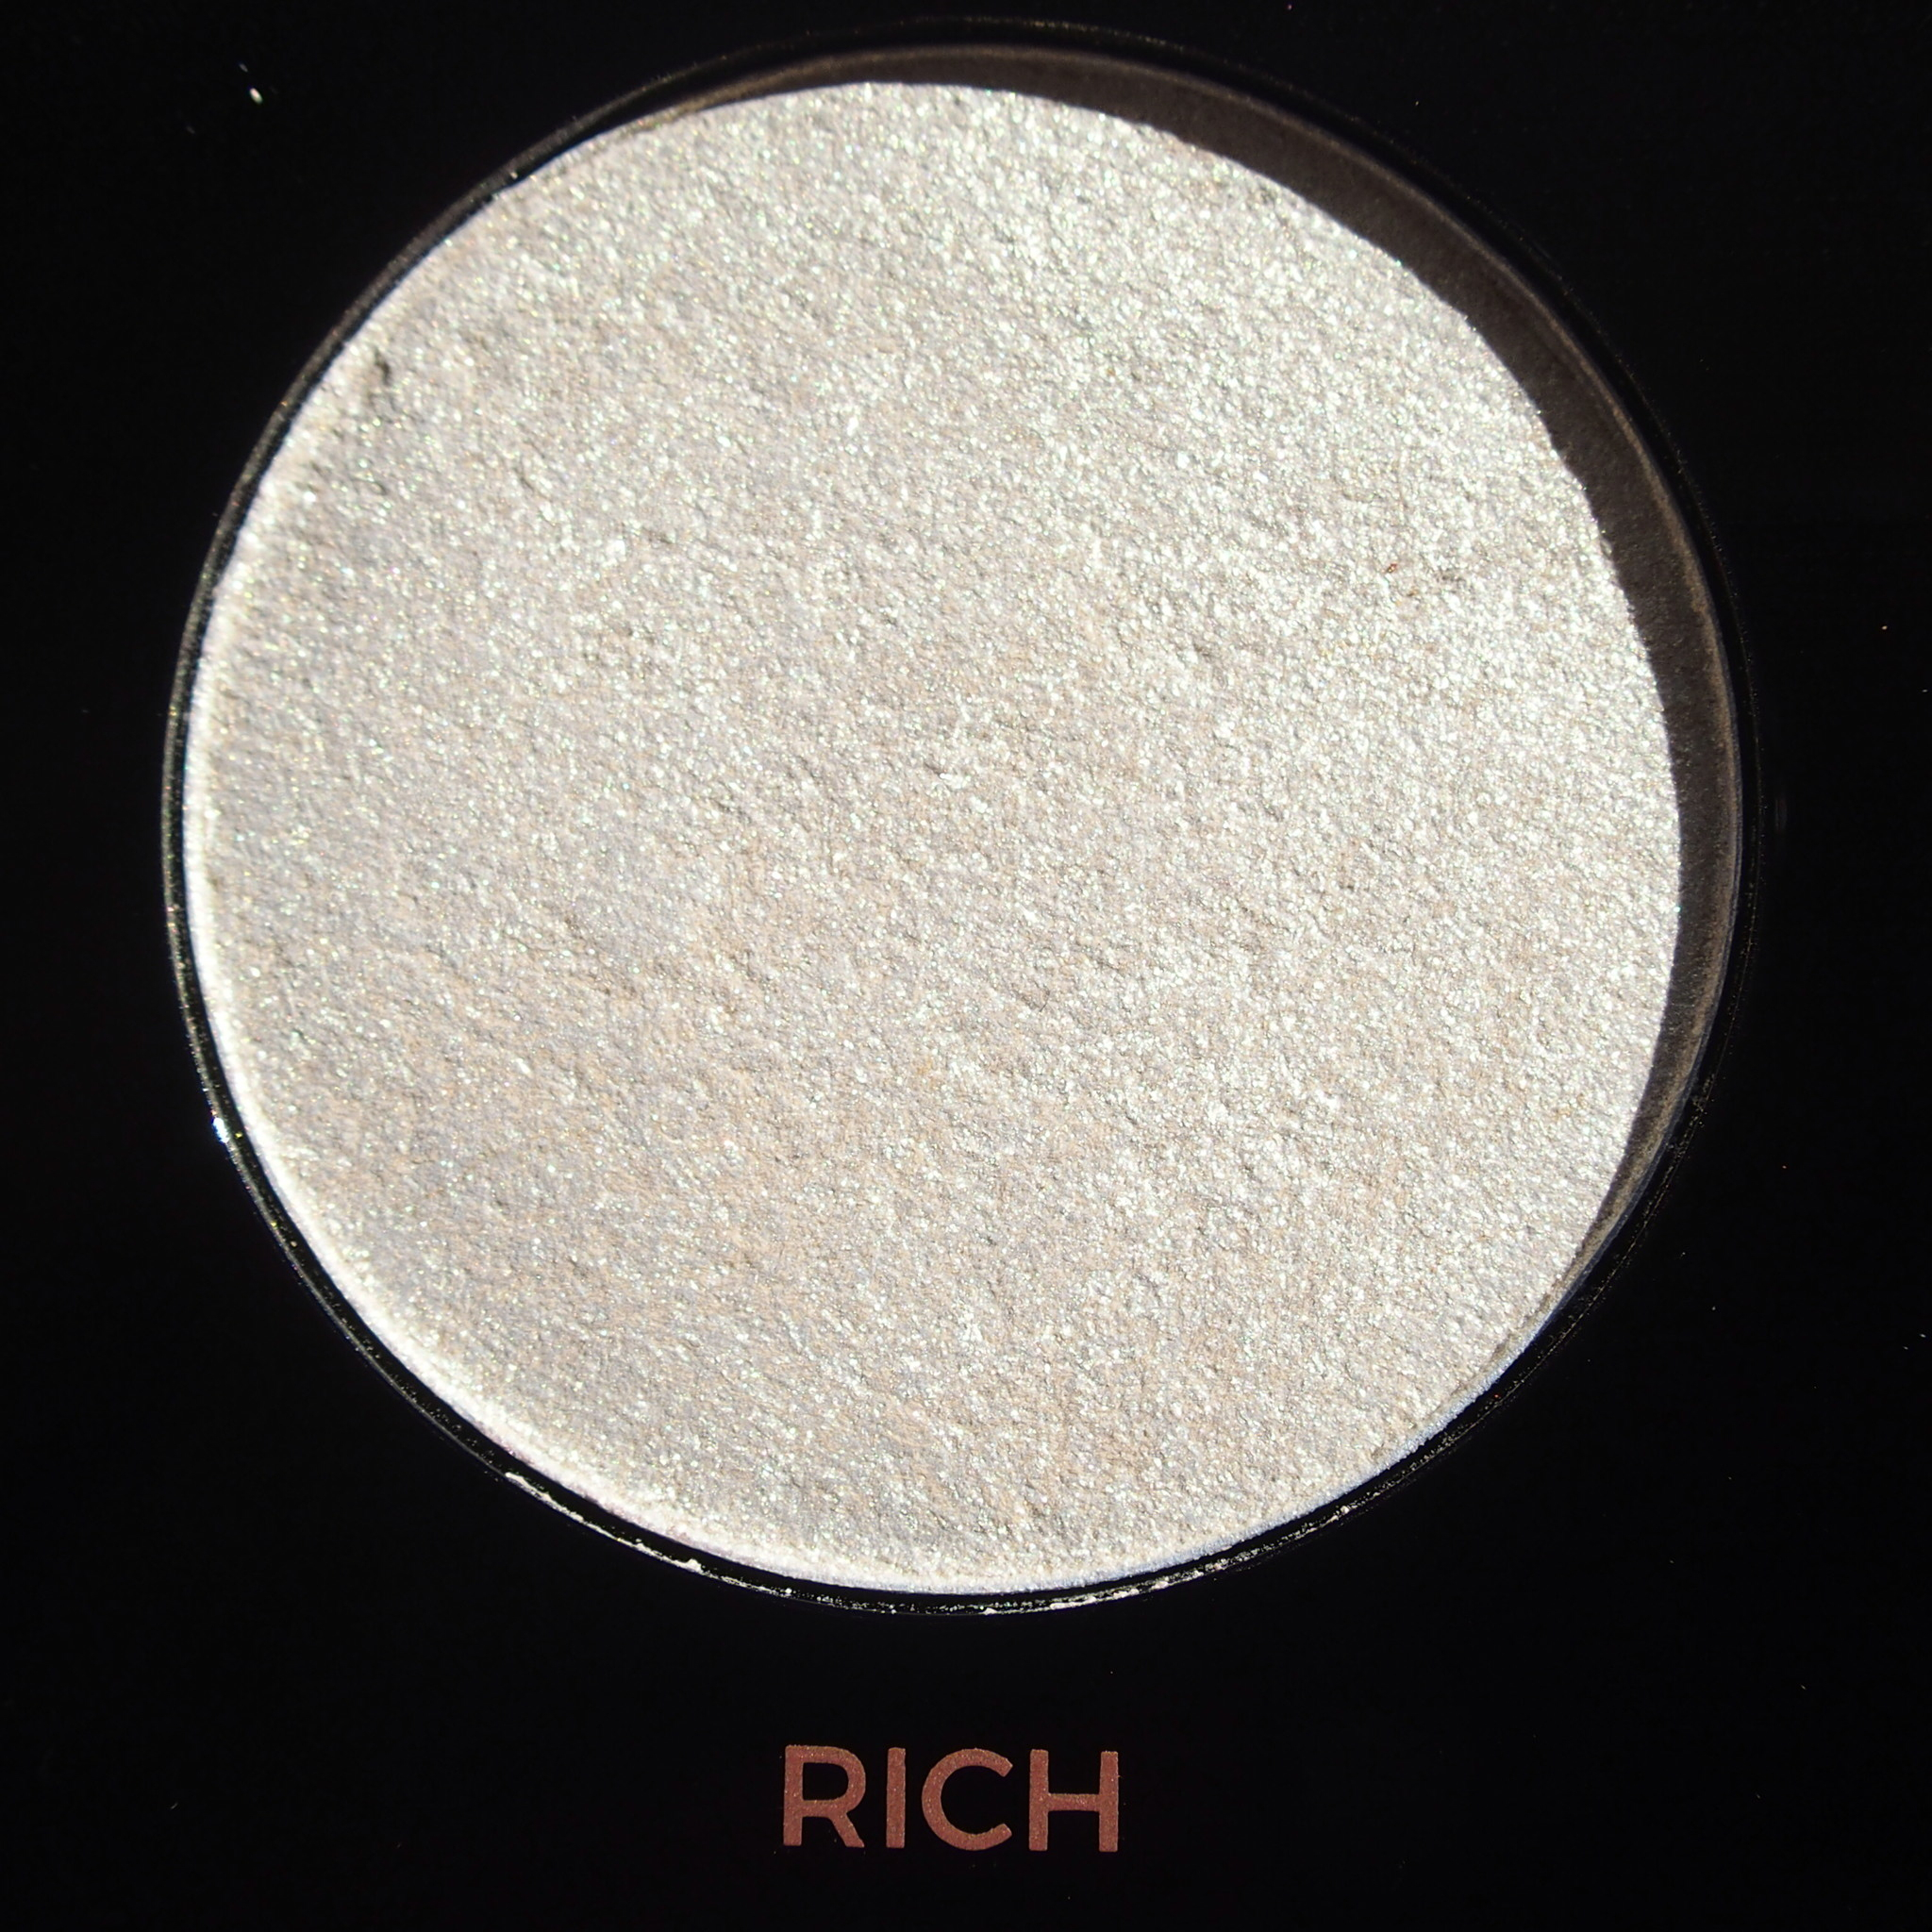 Makeup Revolution Pro HD Amplified Get Baked Palette swatches - Rich